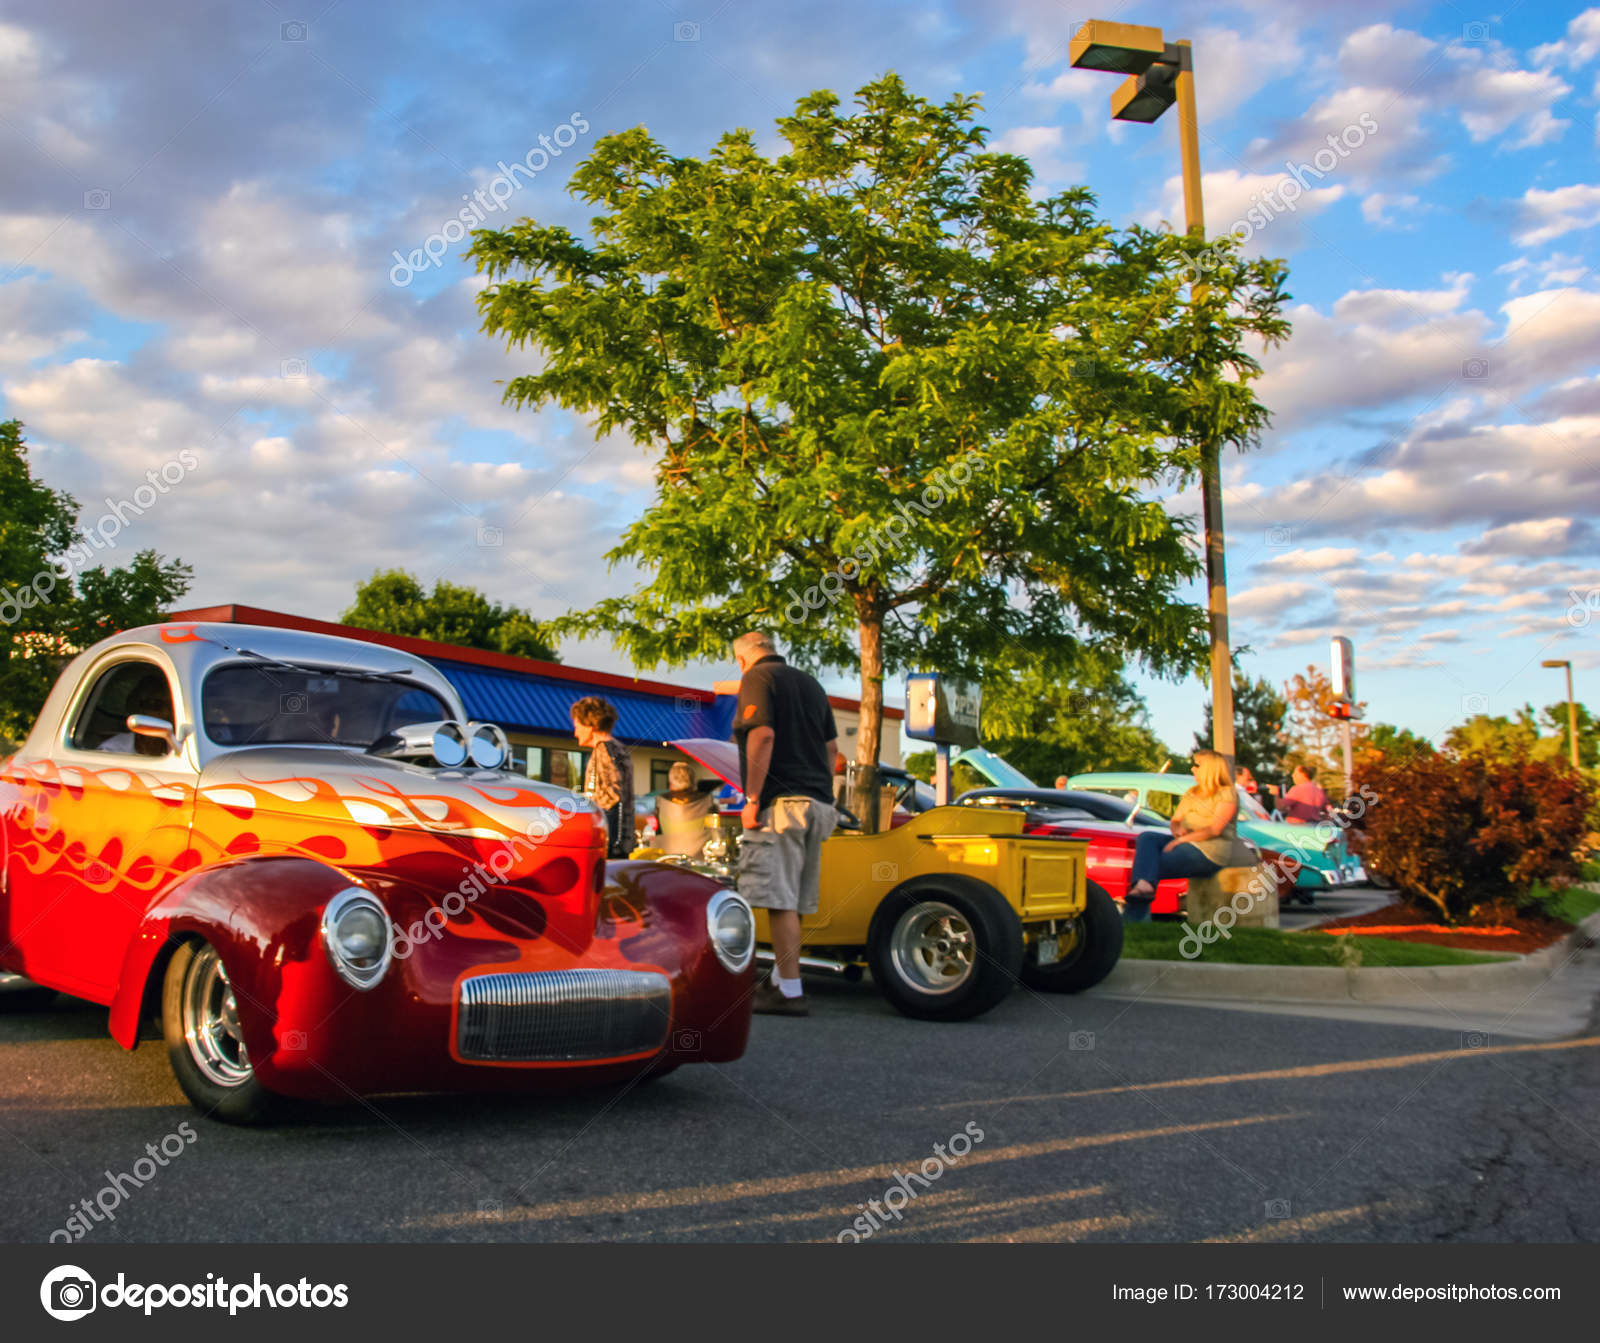 Burger King Classic Car show in Denver – Stock Editorial